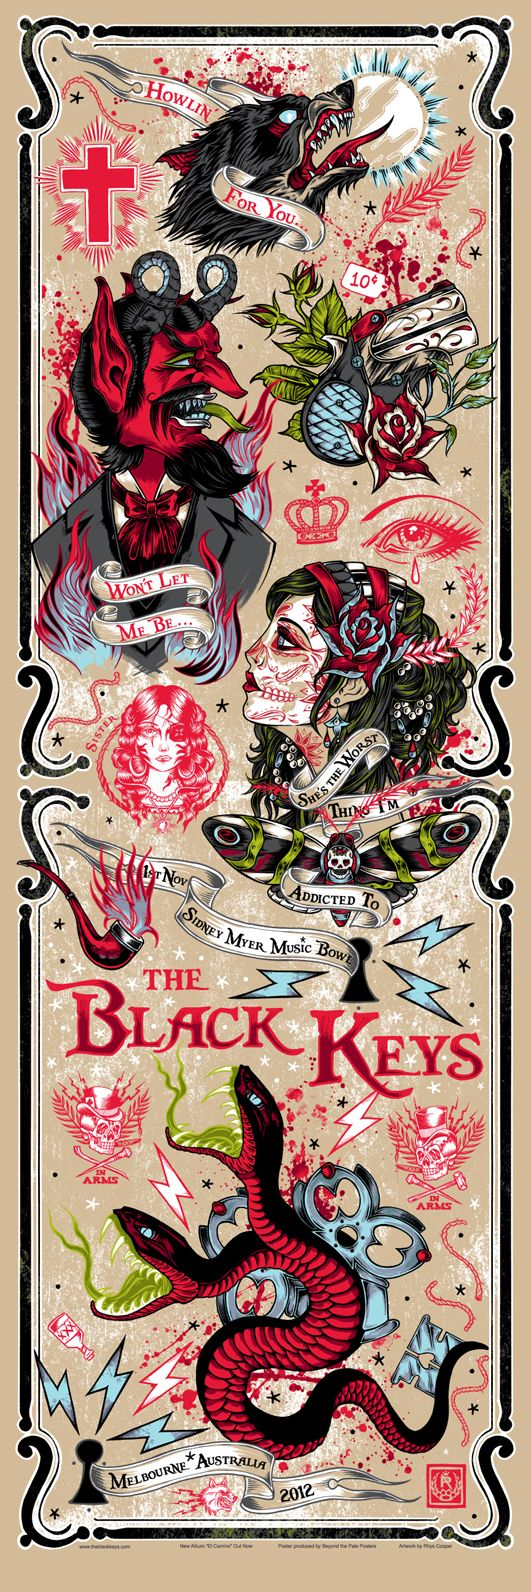 Poster design key - Inside The Rock Poster Frame Blog Rhys Cooper The Black Keys Variant Posters On Sale